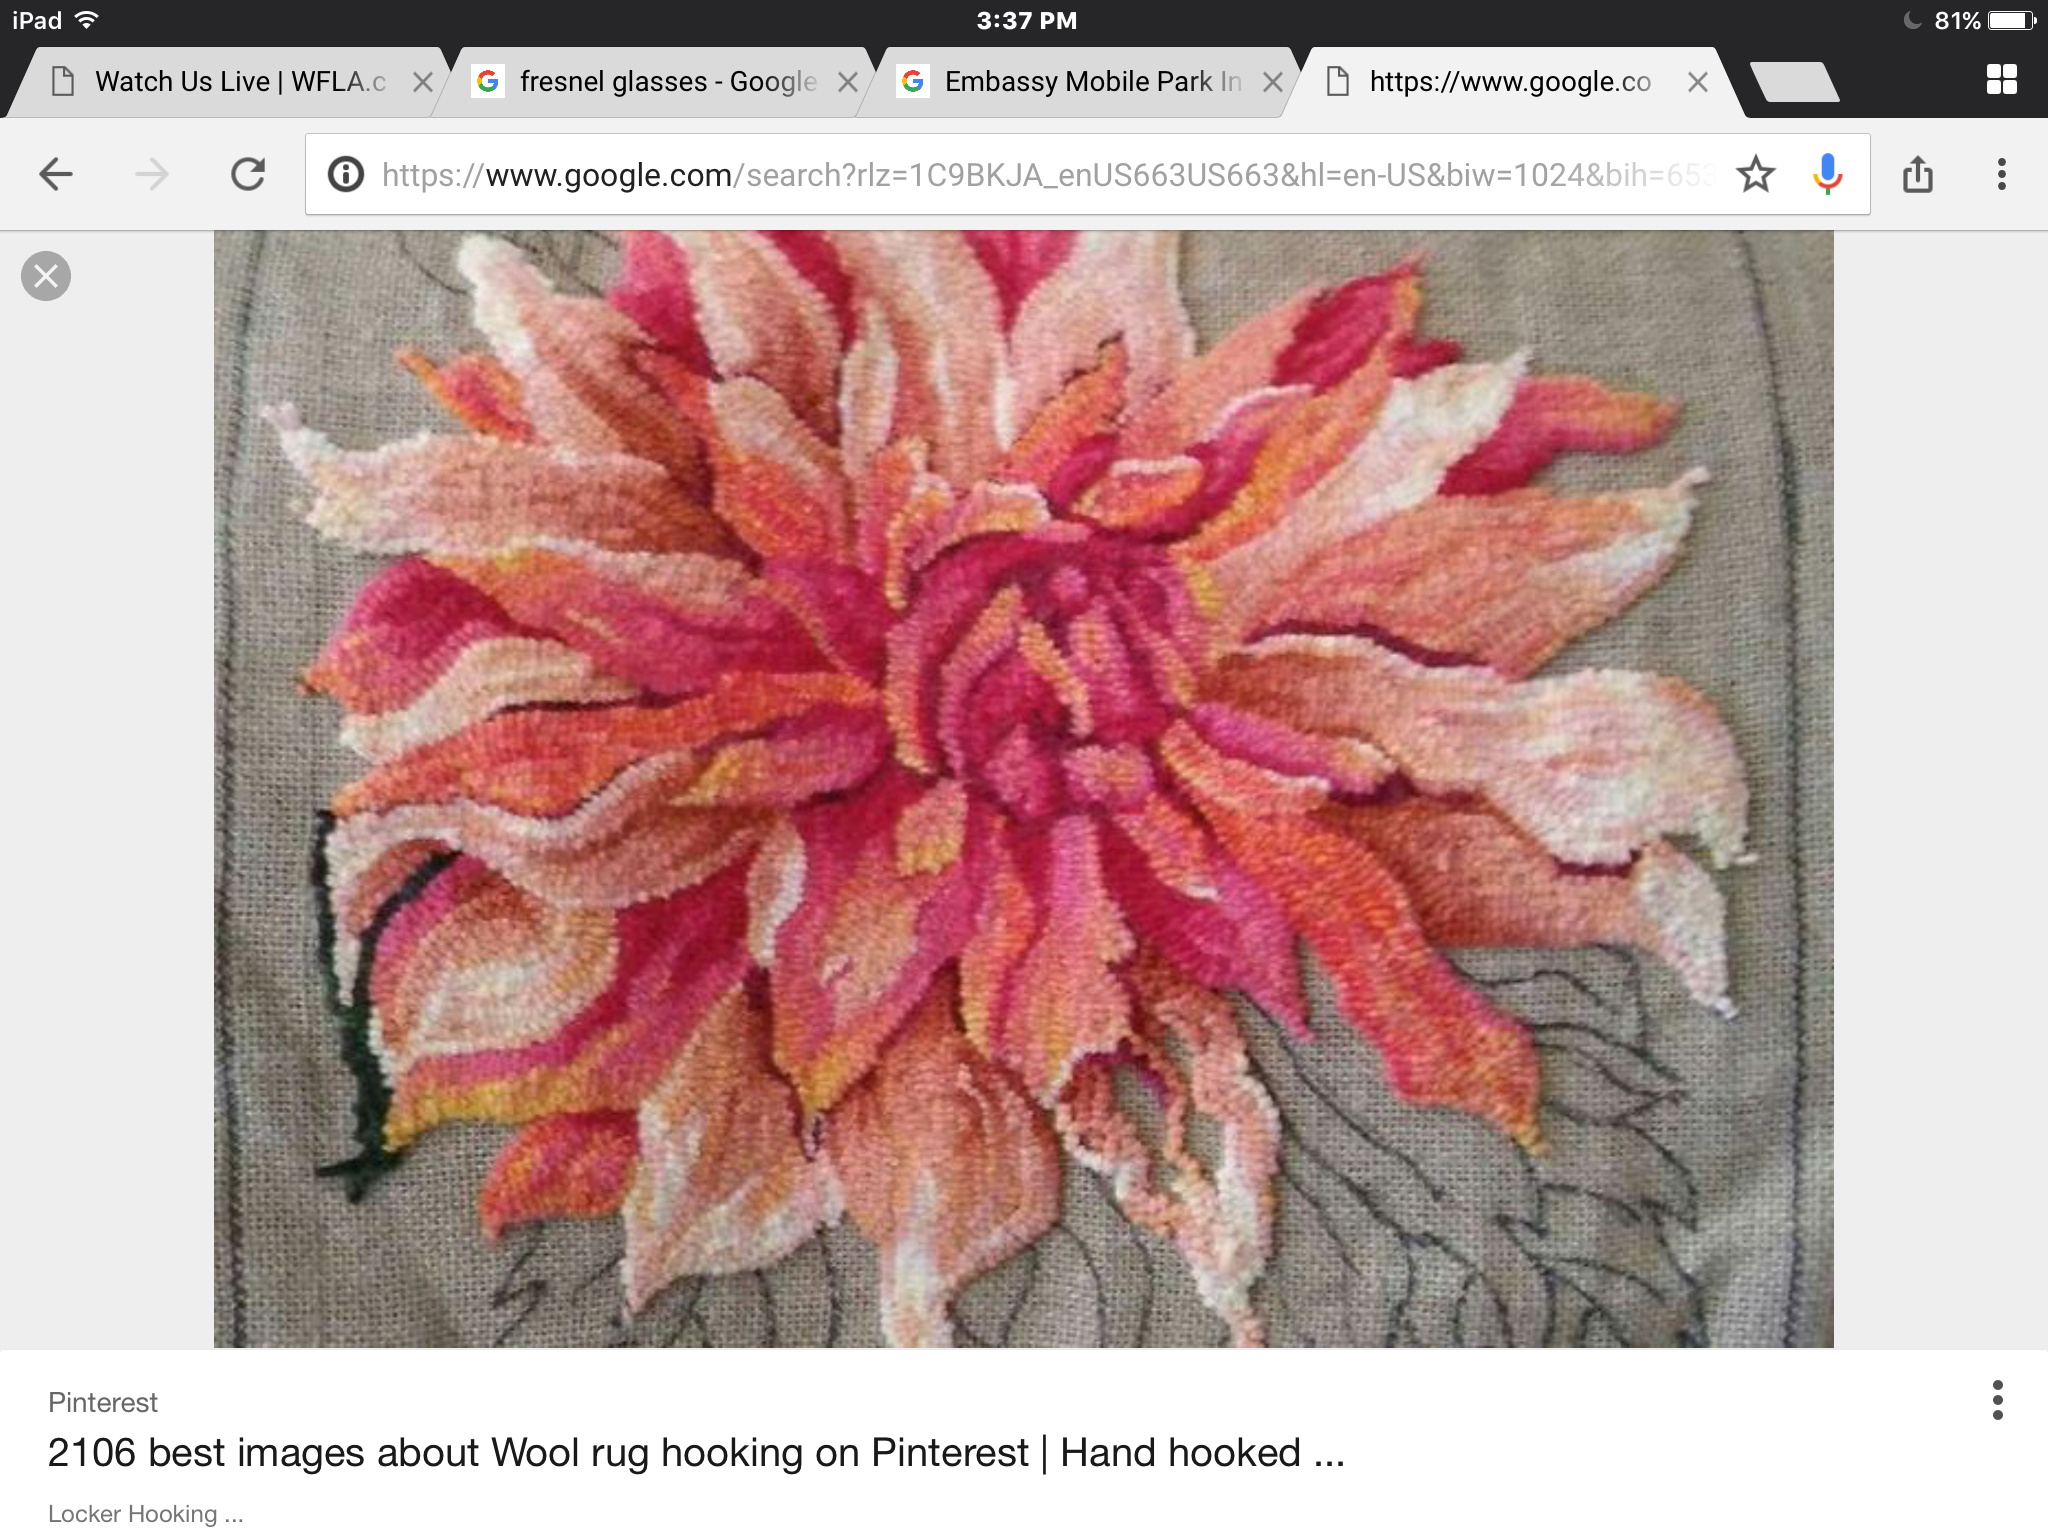 Pin By Tere Polledo On Alfombras Rug Hooking Rug Hooking Designs Rug Hooking Patterns